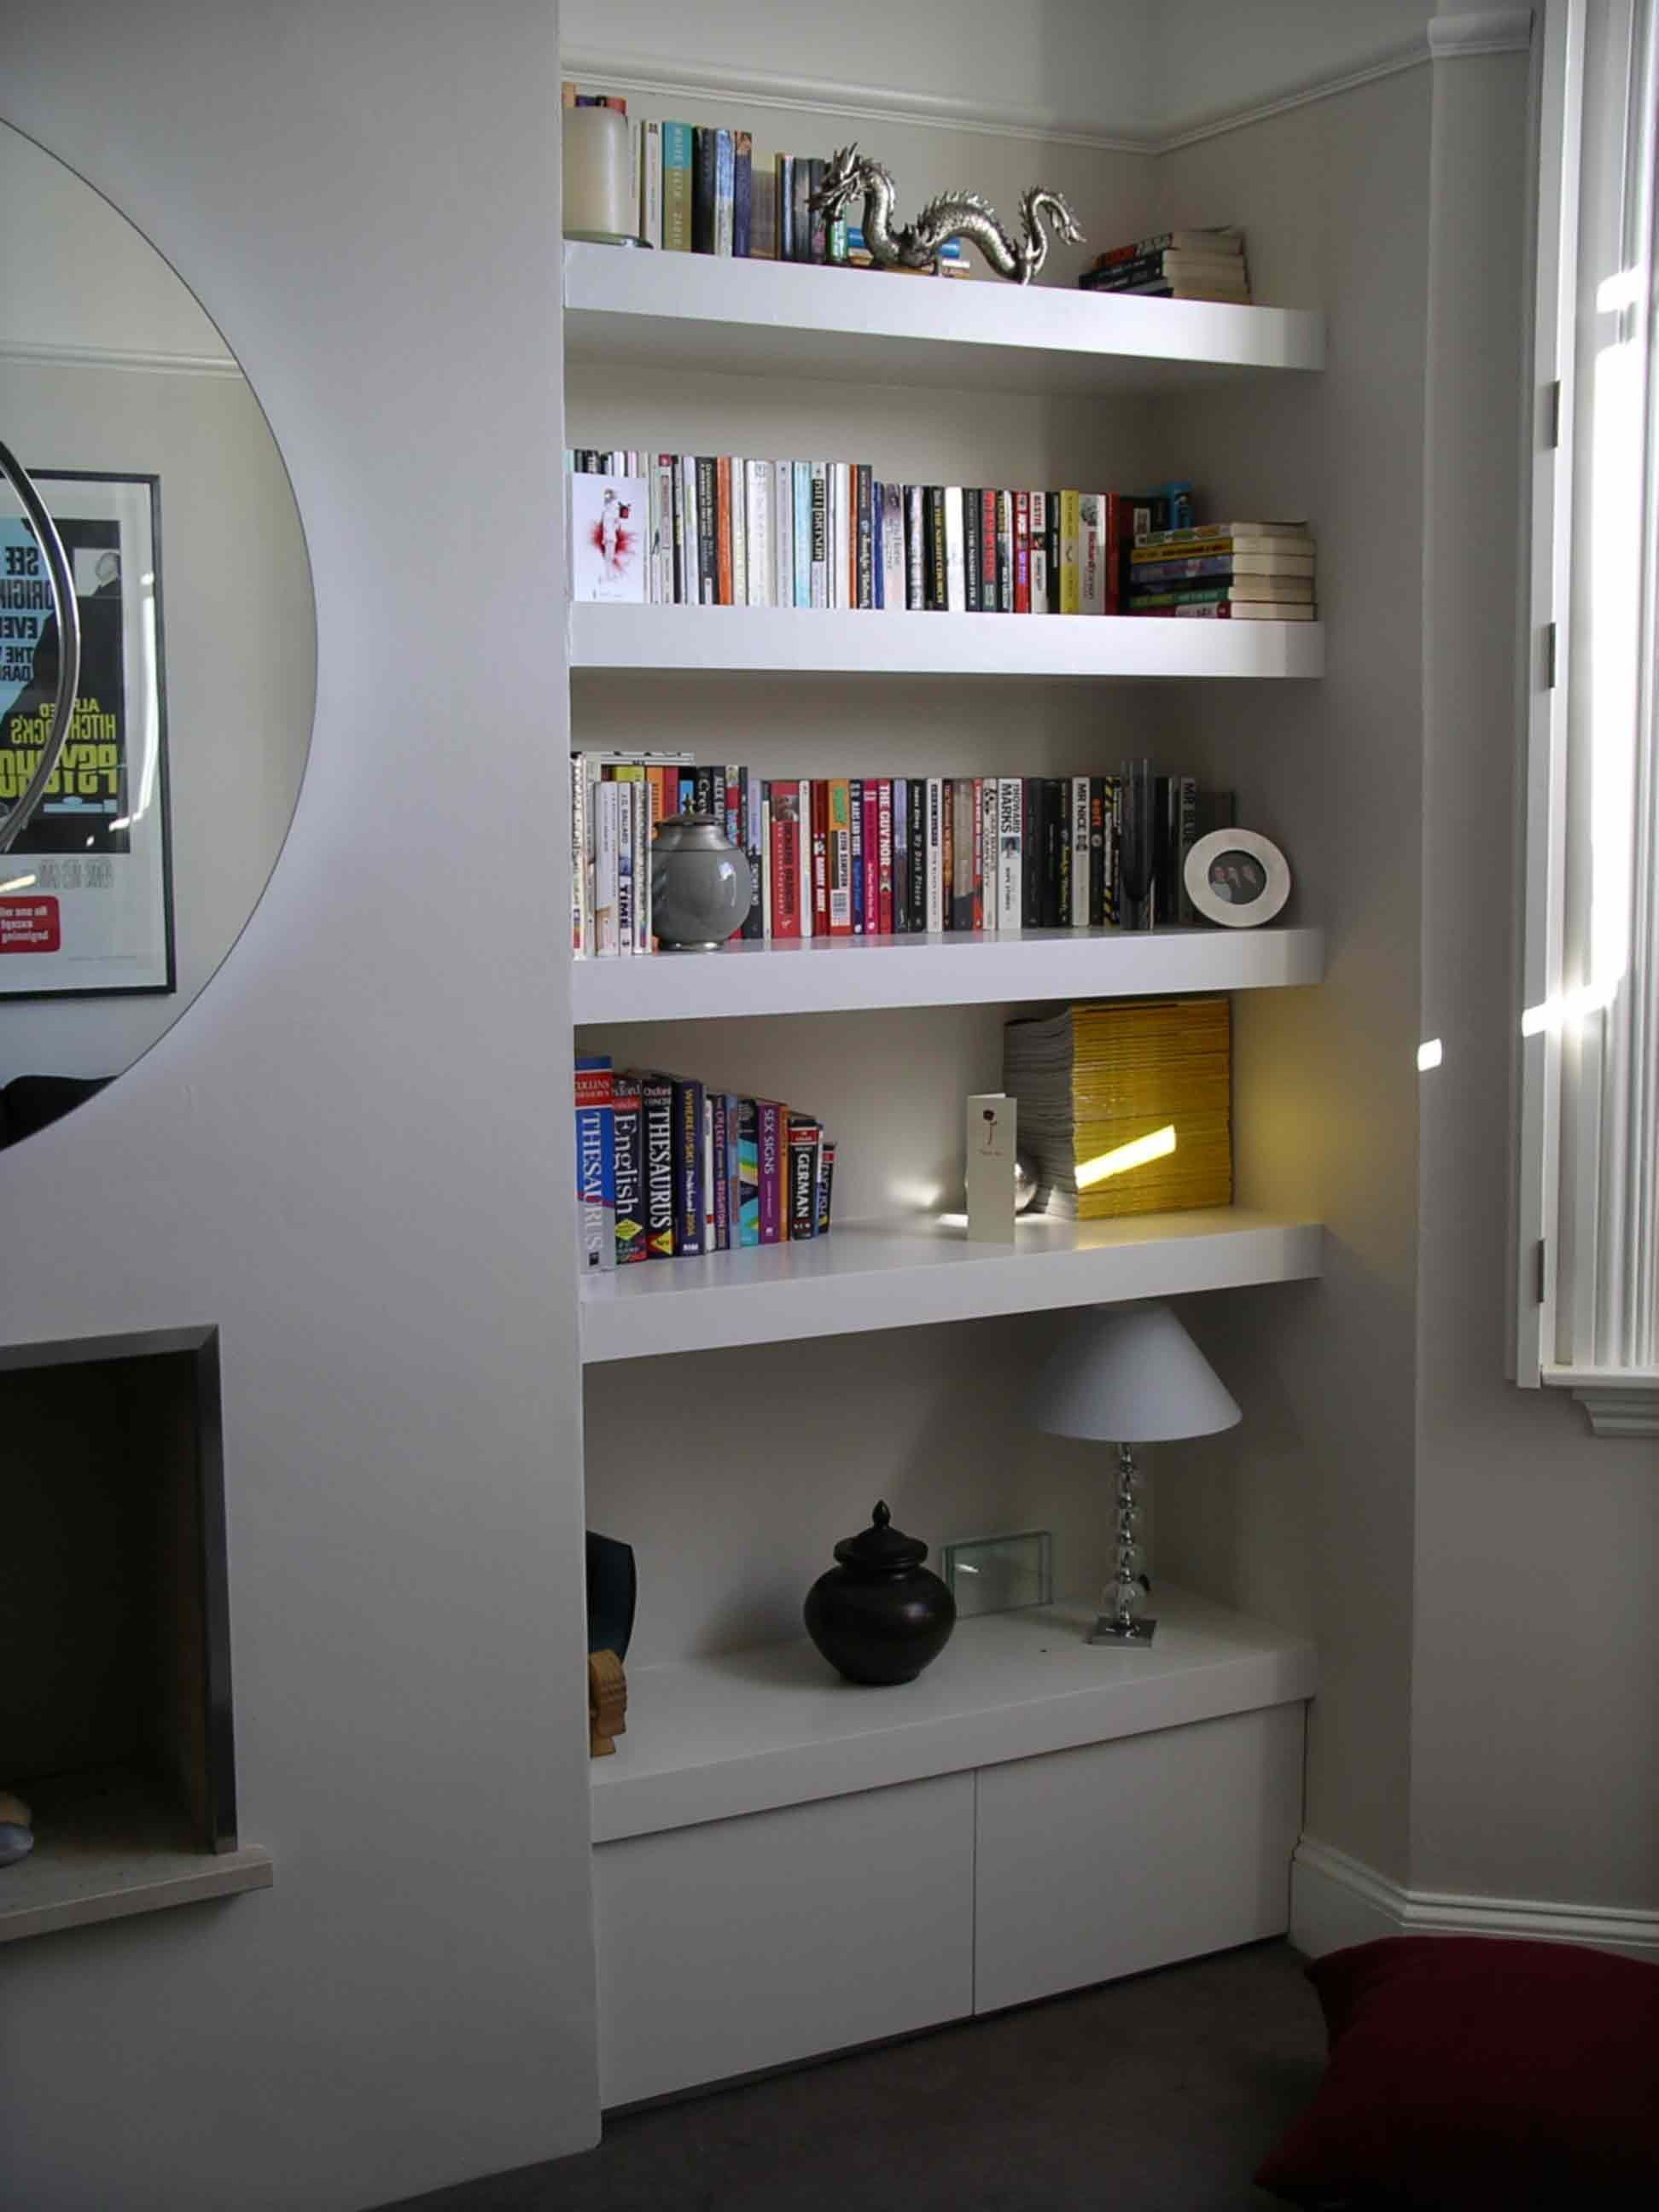 Alcove cupboard with floating shelves my home pinterest alcove cupboards and alcove - Living room multi use shelf idea ...